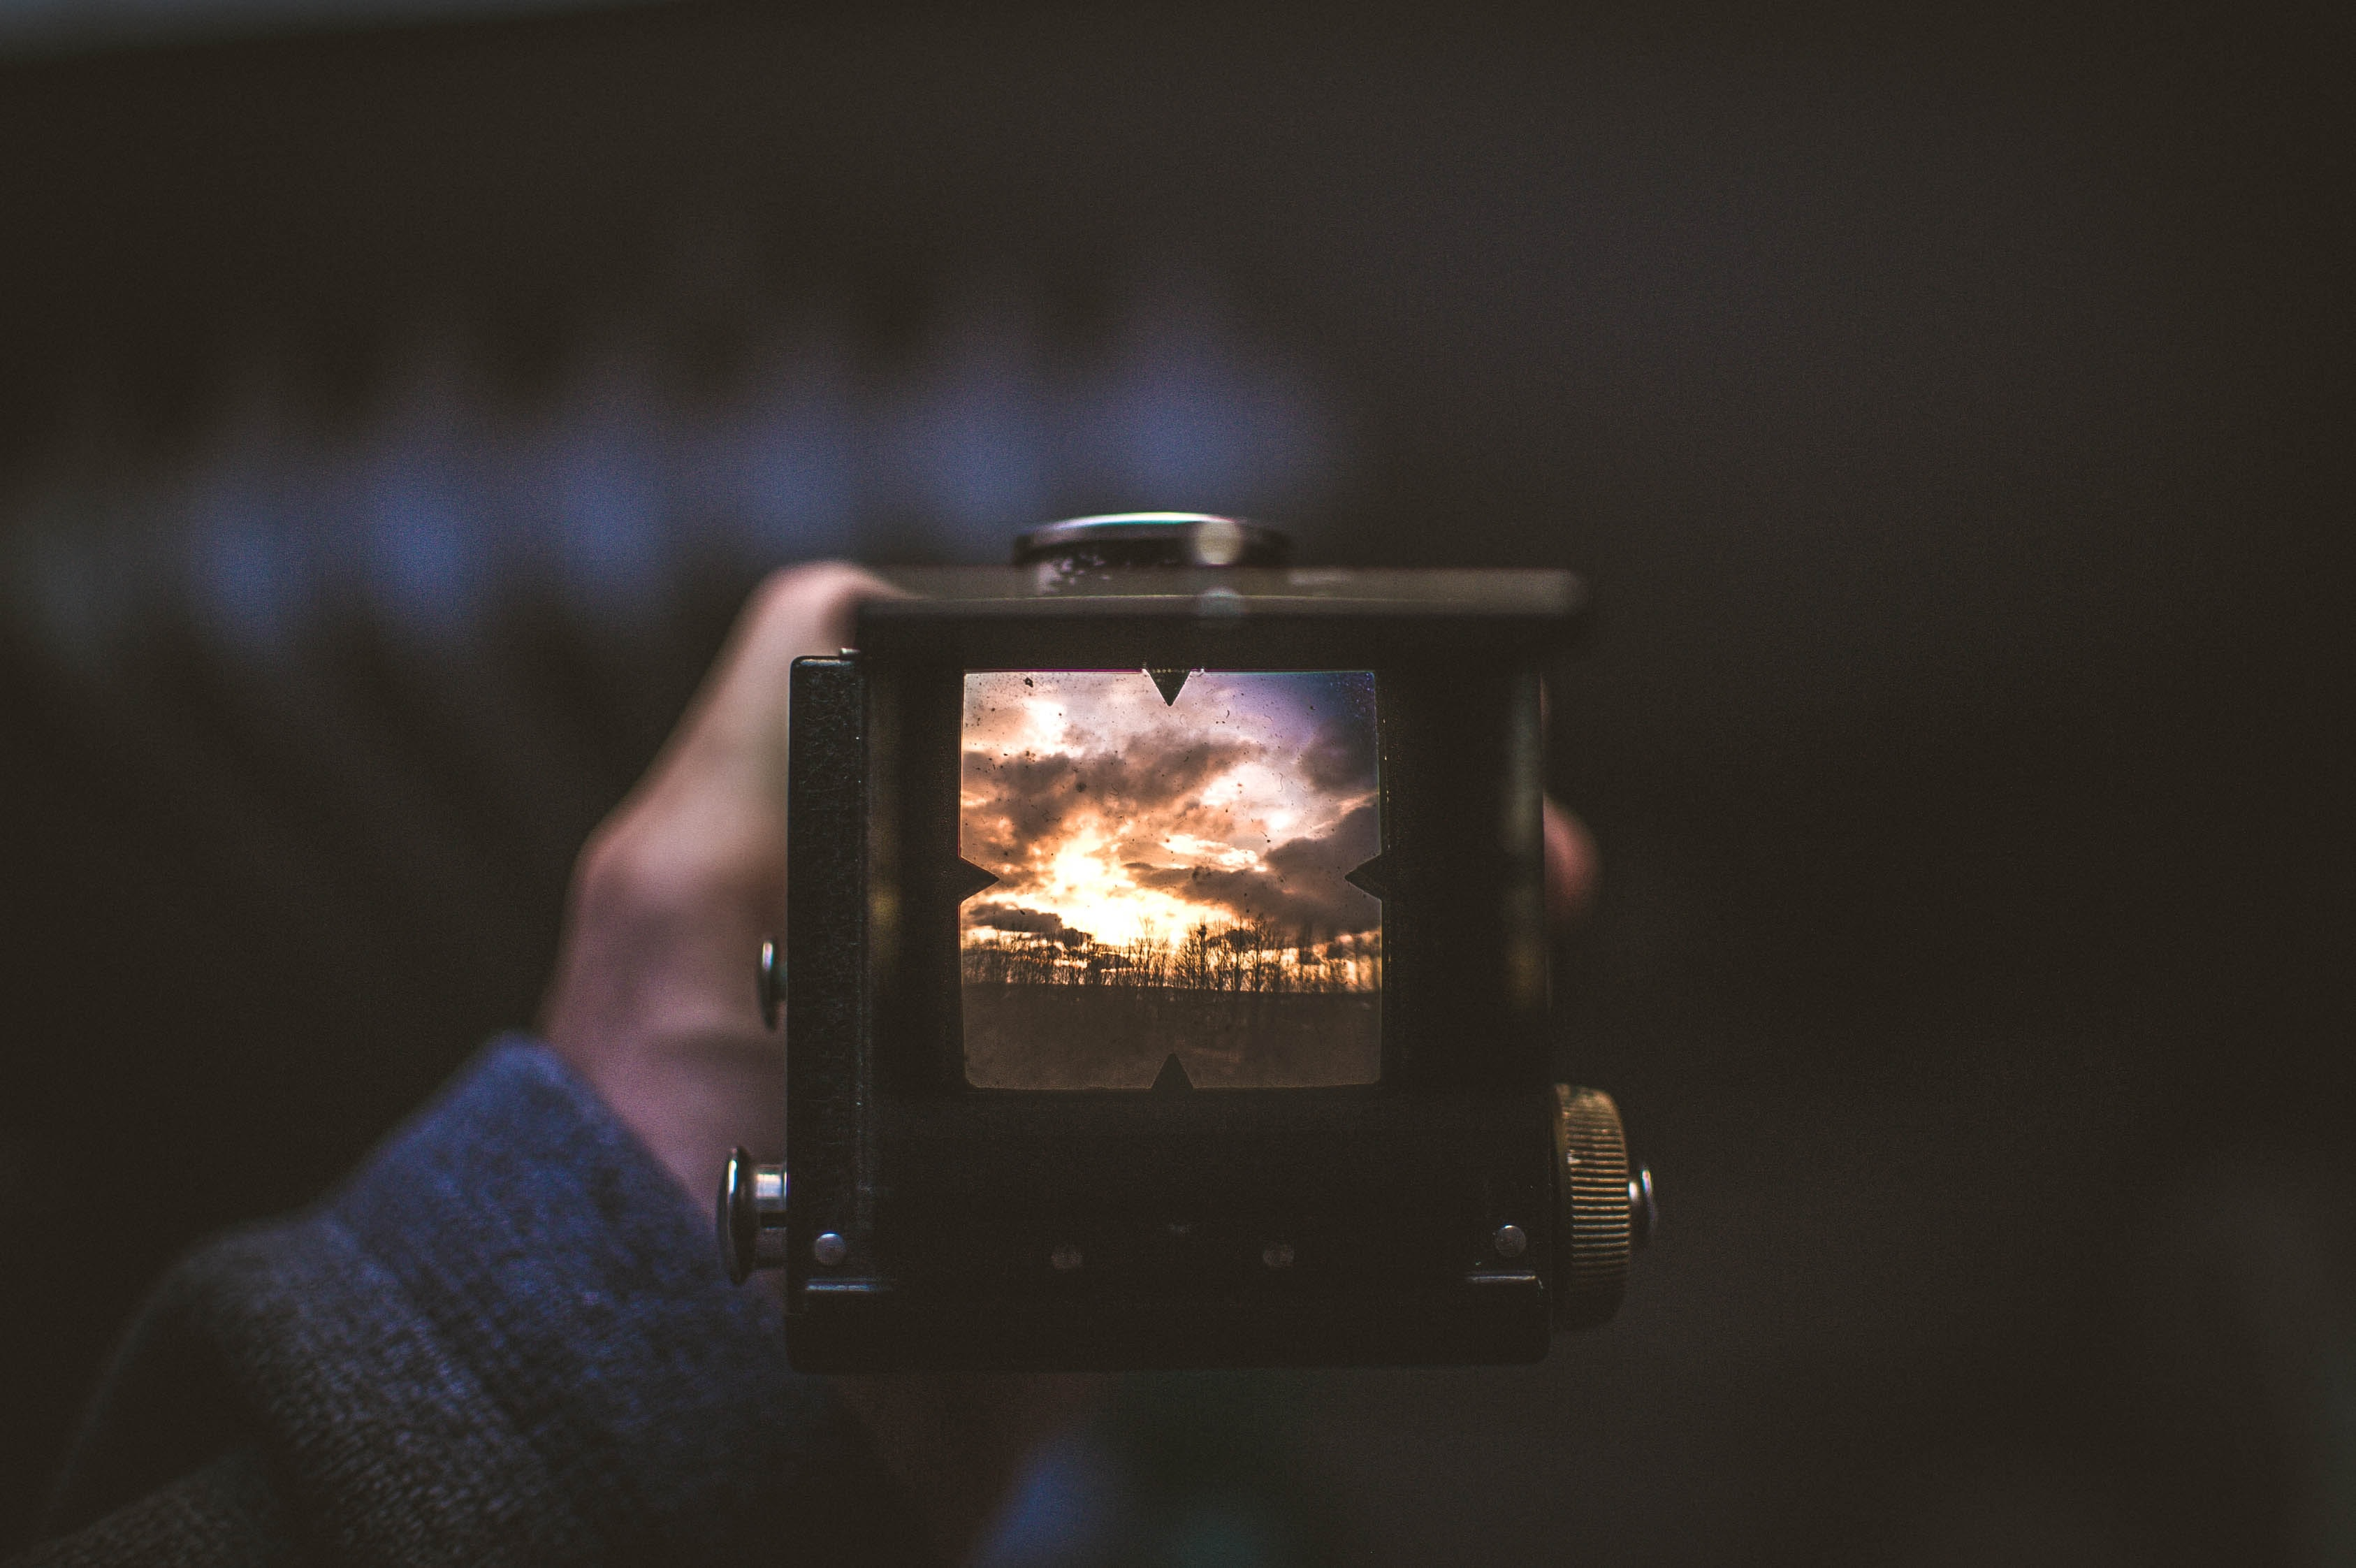 The viewfinder of a camera shows a photo of the sunset.